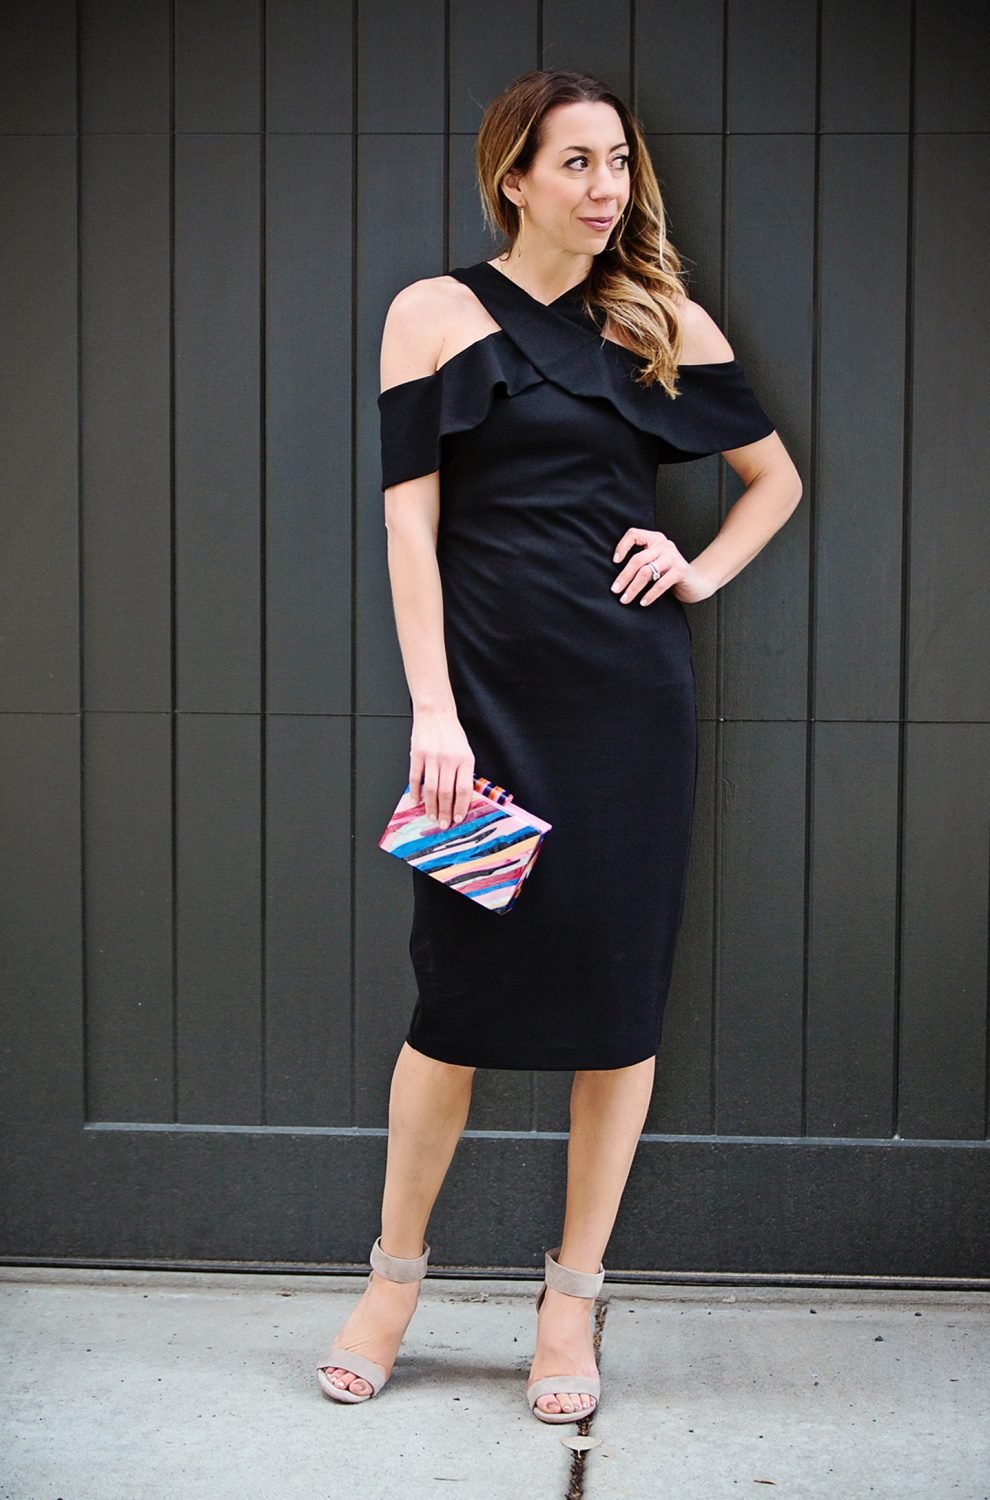 The Motherchic wearing Rachel Roy black dress